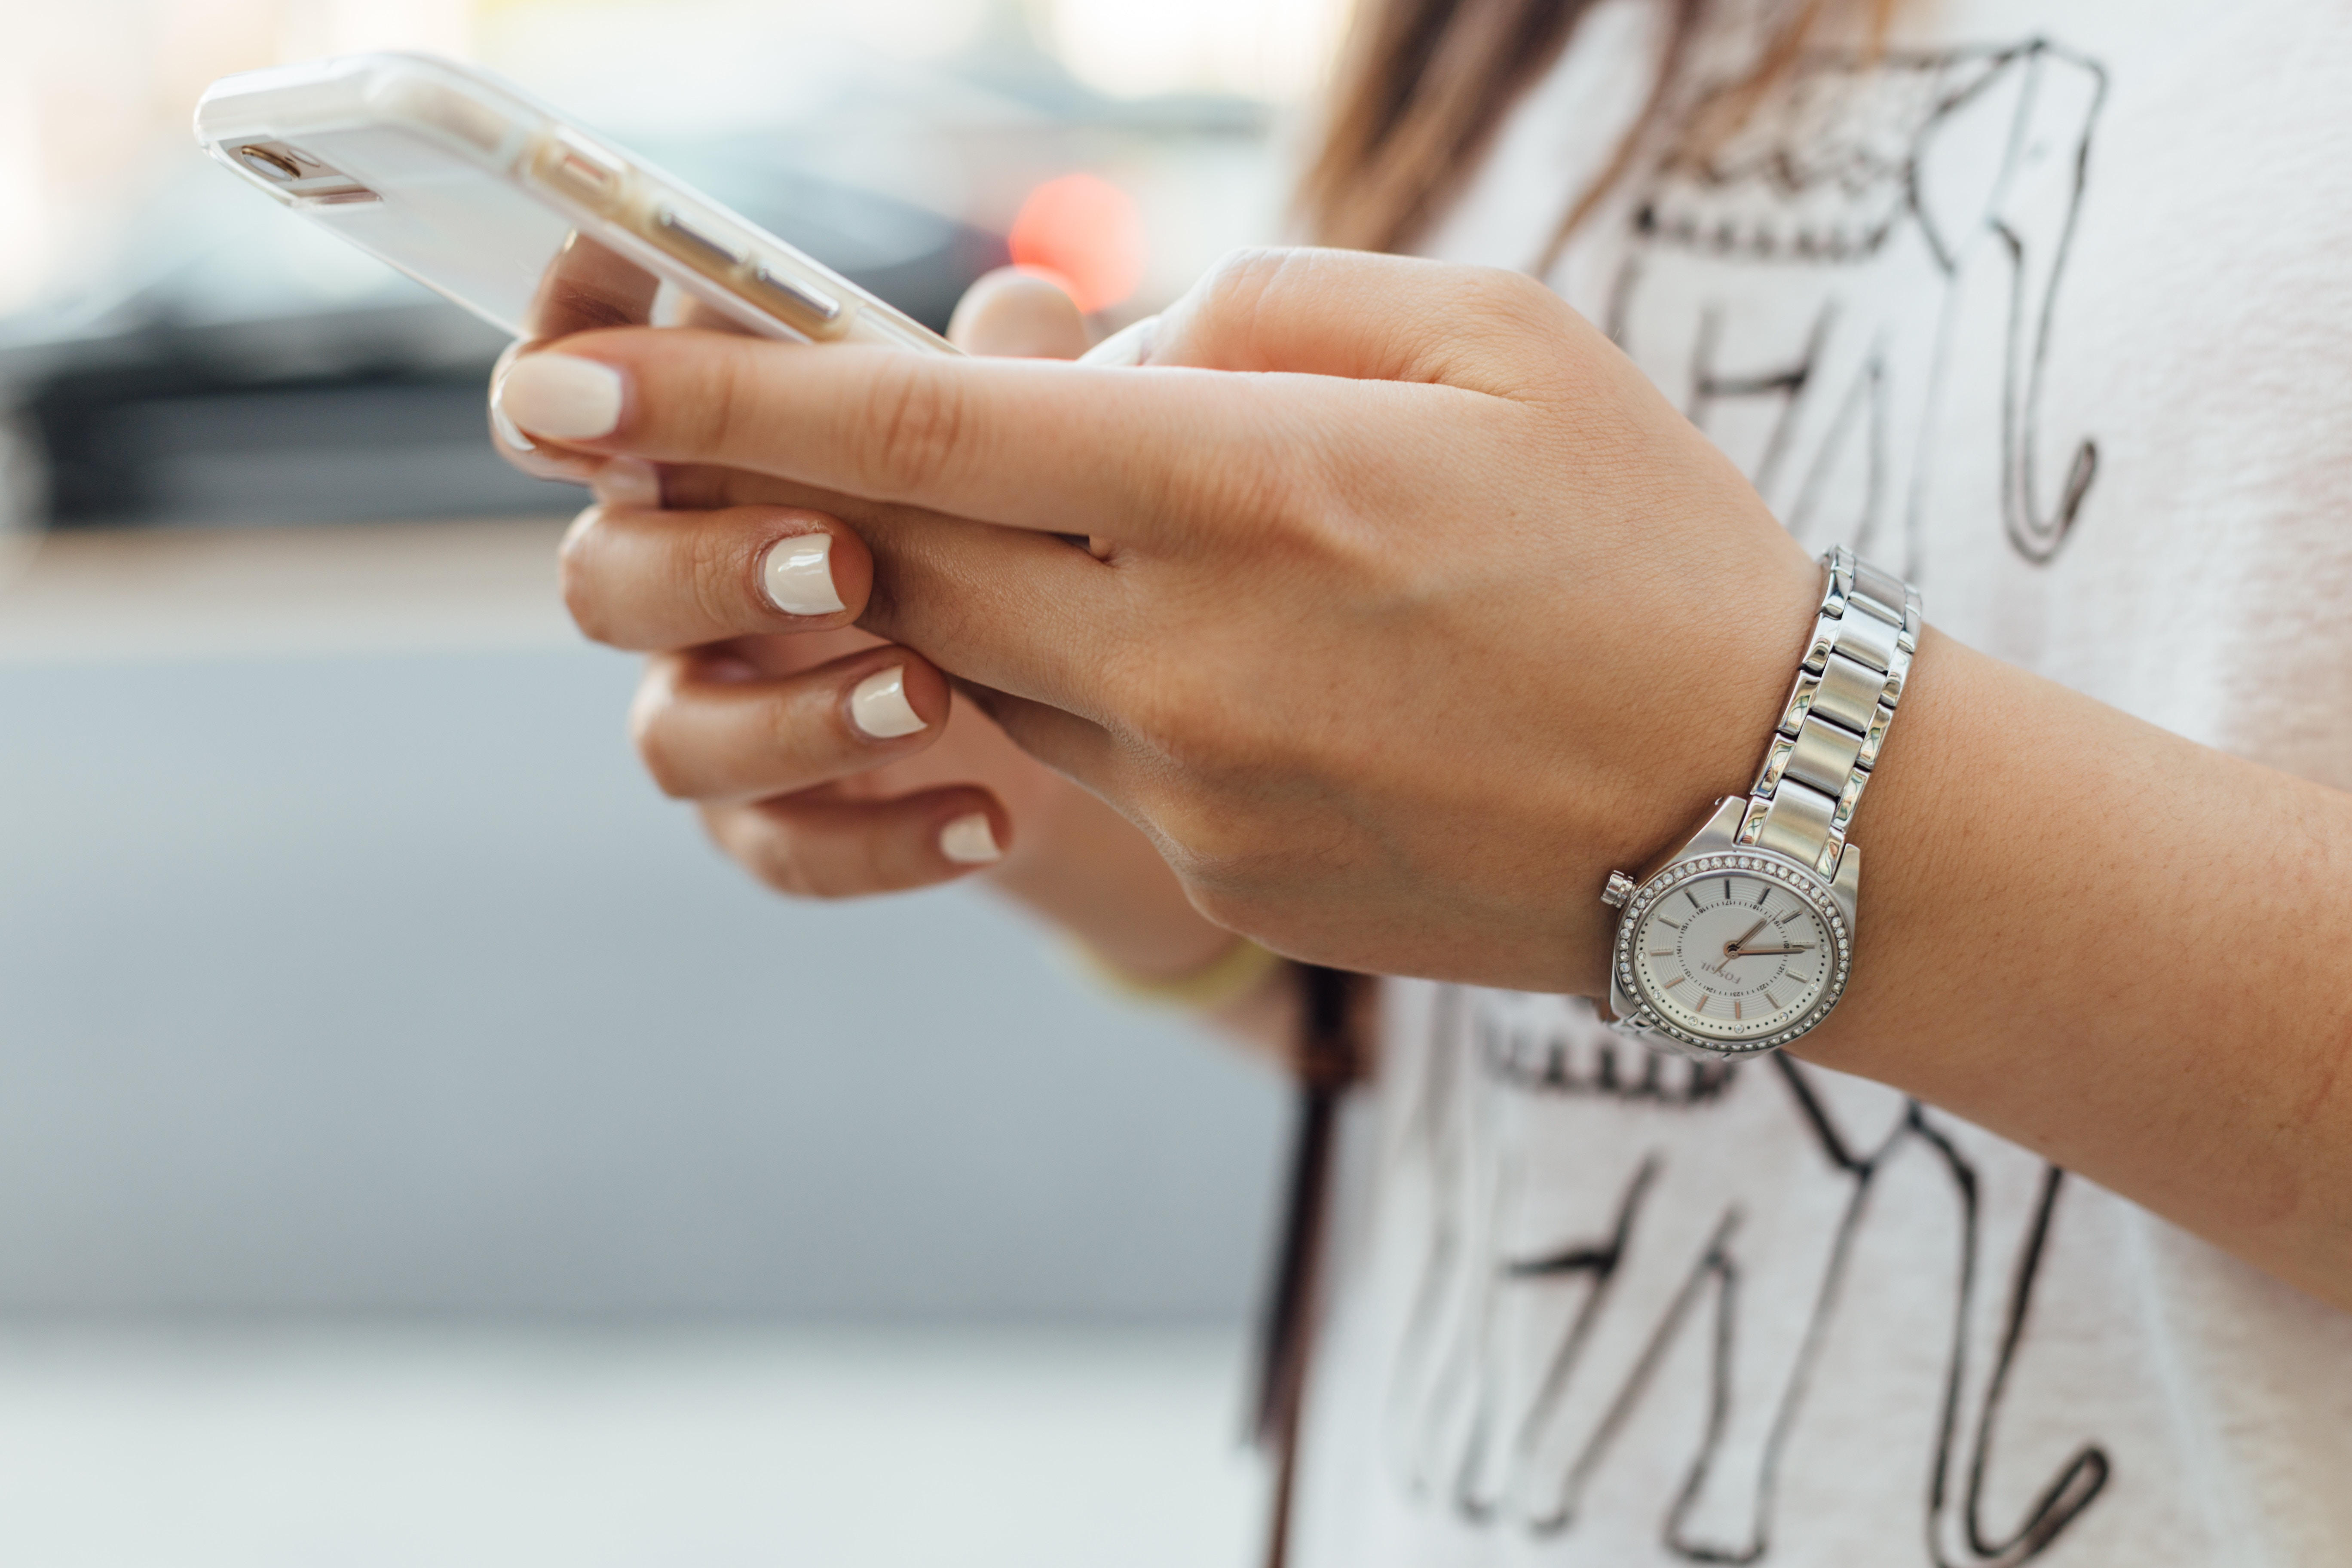 5 ways to Make Money with Your Cell Phone